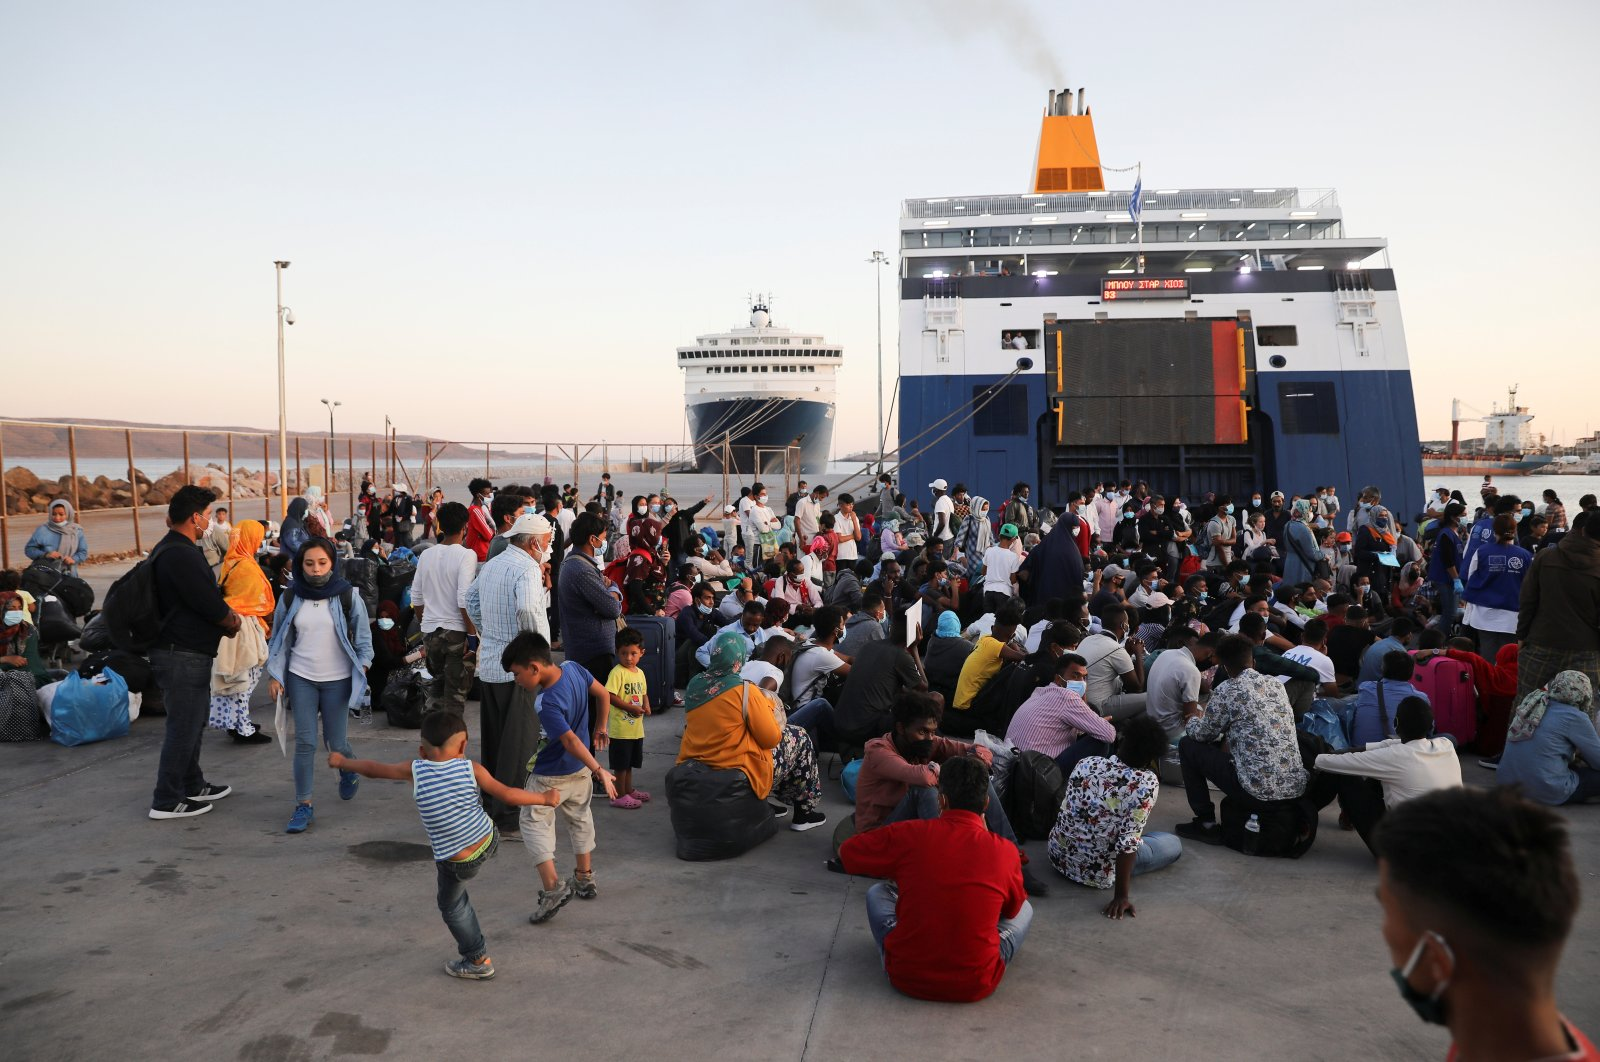 Refugees and migrants wait to be transferred to camps on the mainland after their arrival on a passenger ferry from the island of Lesbos at the port of Lavrio, Greece, Sept. 29, 2020. (Reuters Photo)